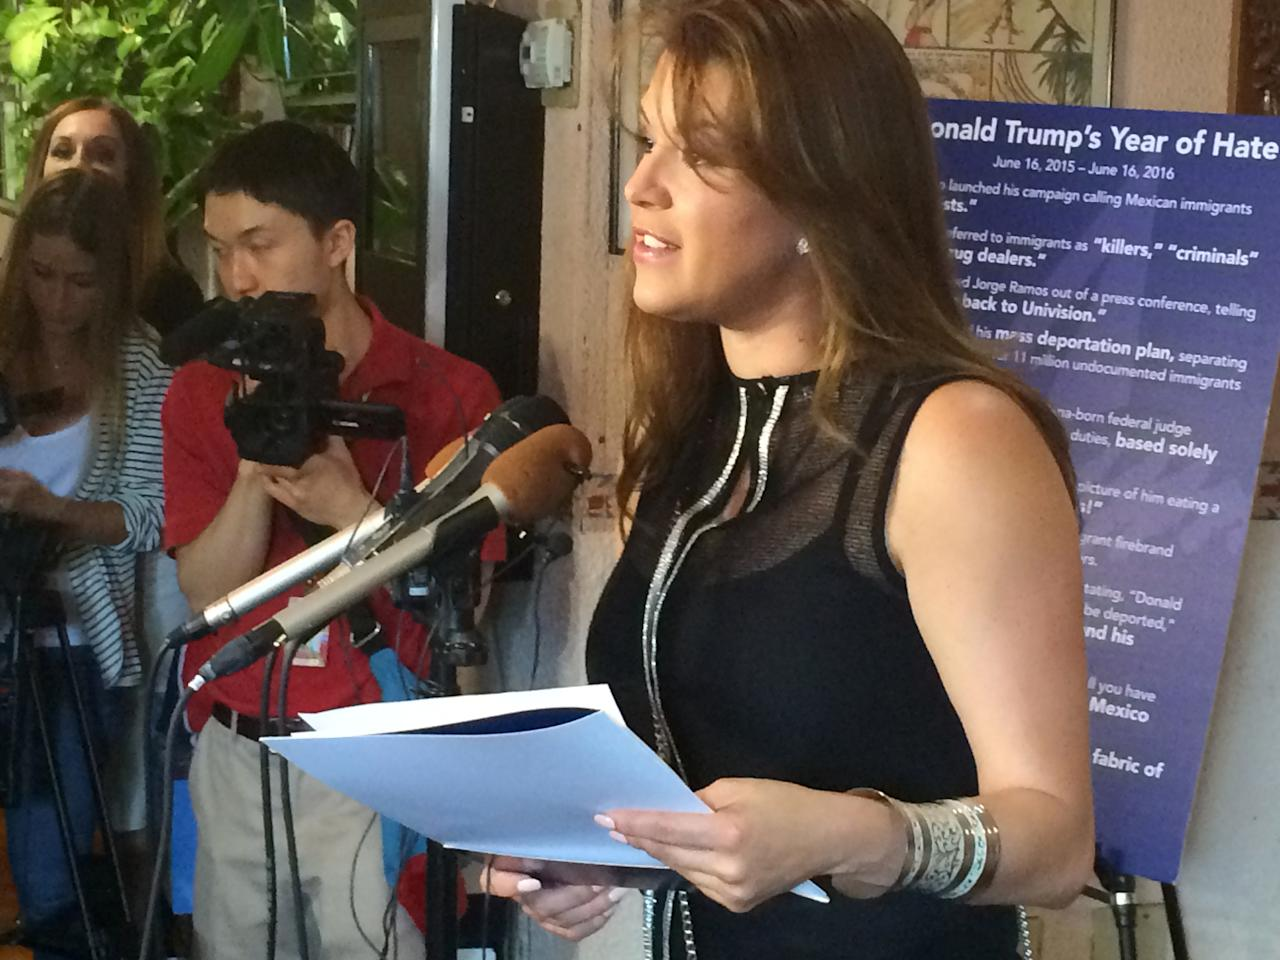 <p> FILE - In this June 15, 2016, file photo, former Miss Universe Alicia Machado speaks during a news conference at a Latino restaurant in Arlington, Va., to criticize Republican presidential candidate Donald Trump. Machado became a topic of conversation during the first presidential debate between Trump and Democratic candidate Hillary Clinton on Sept. 27, 2016. (AP Photo/Luis Alonso Lugo, File) </p>